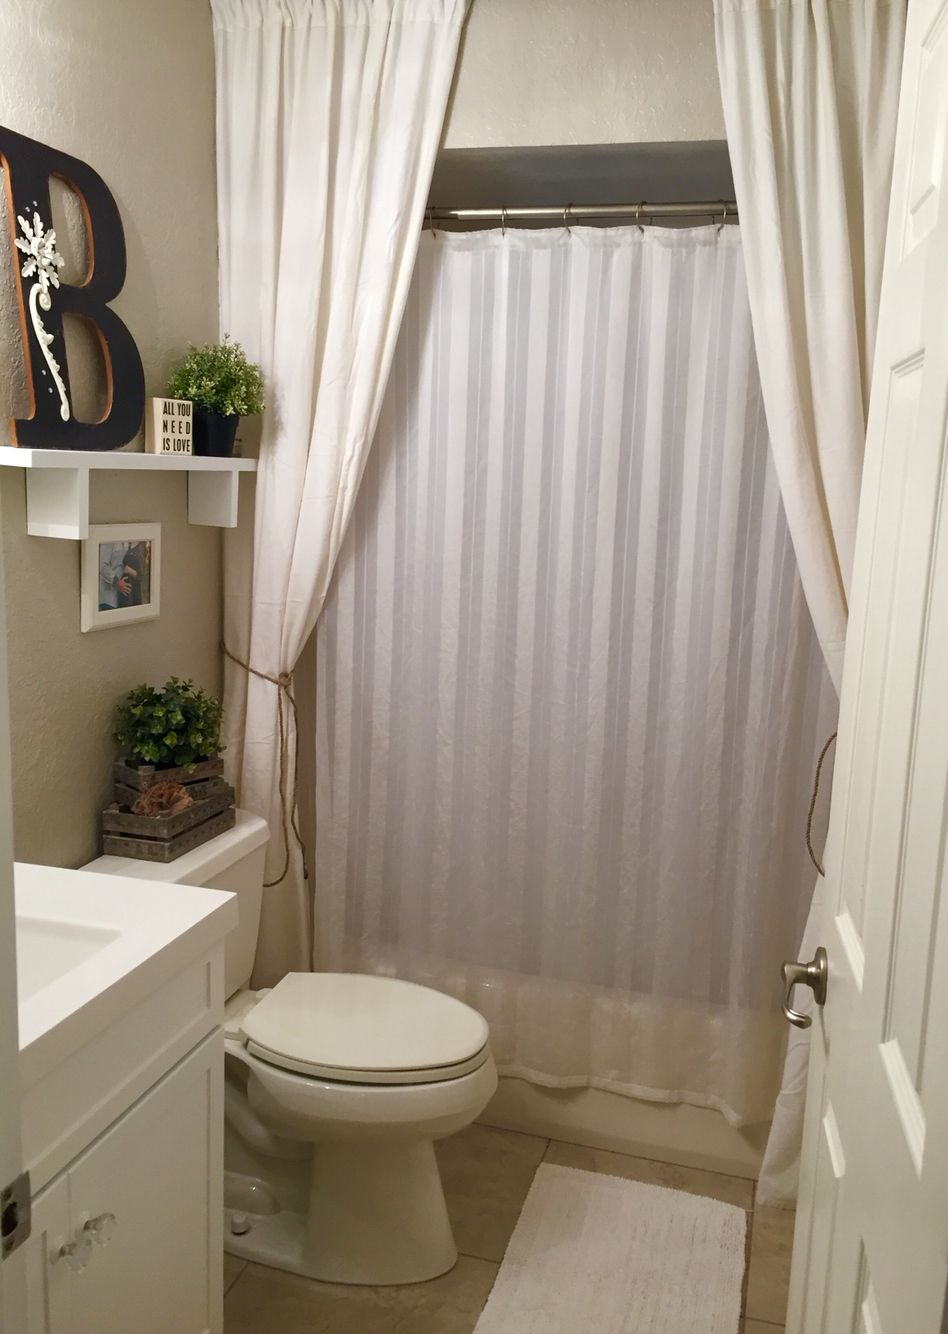 Pin By Tee Bee On Home With Images Bathroom Decor Apartment